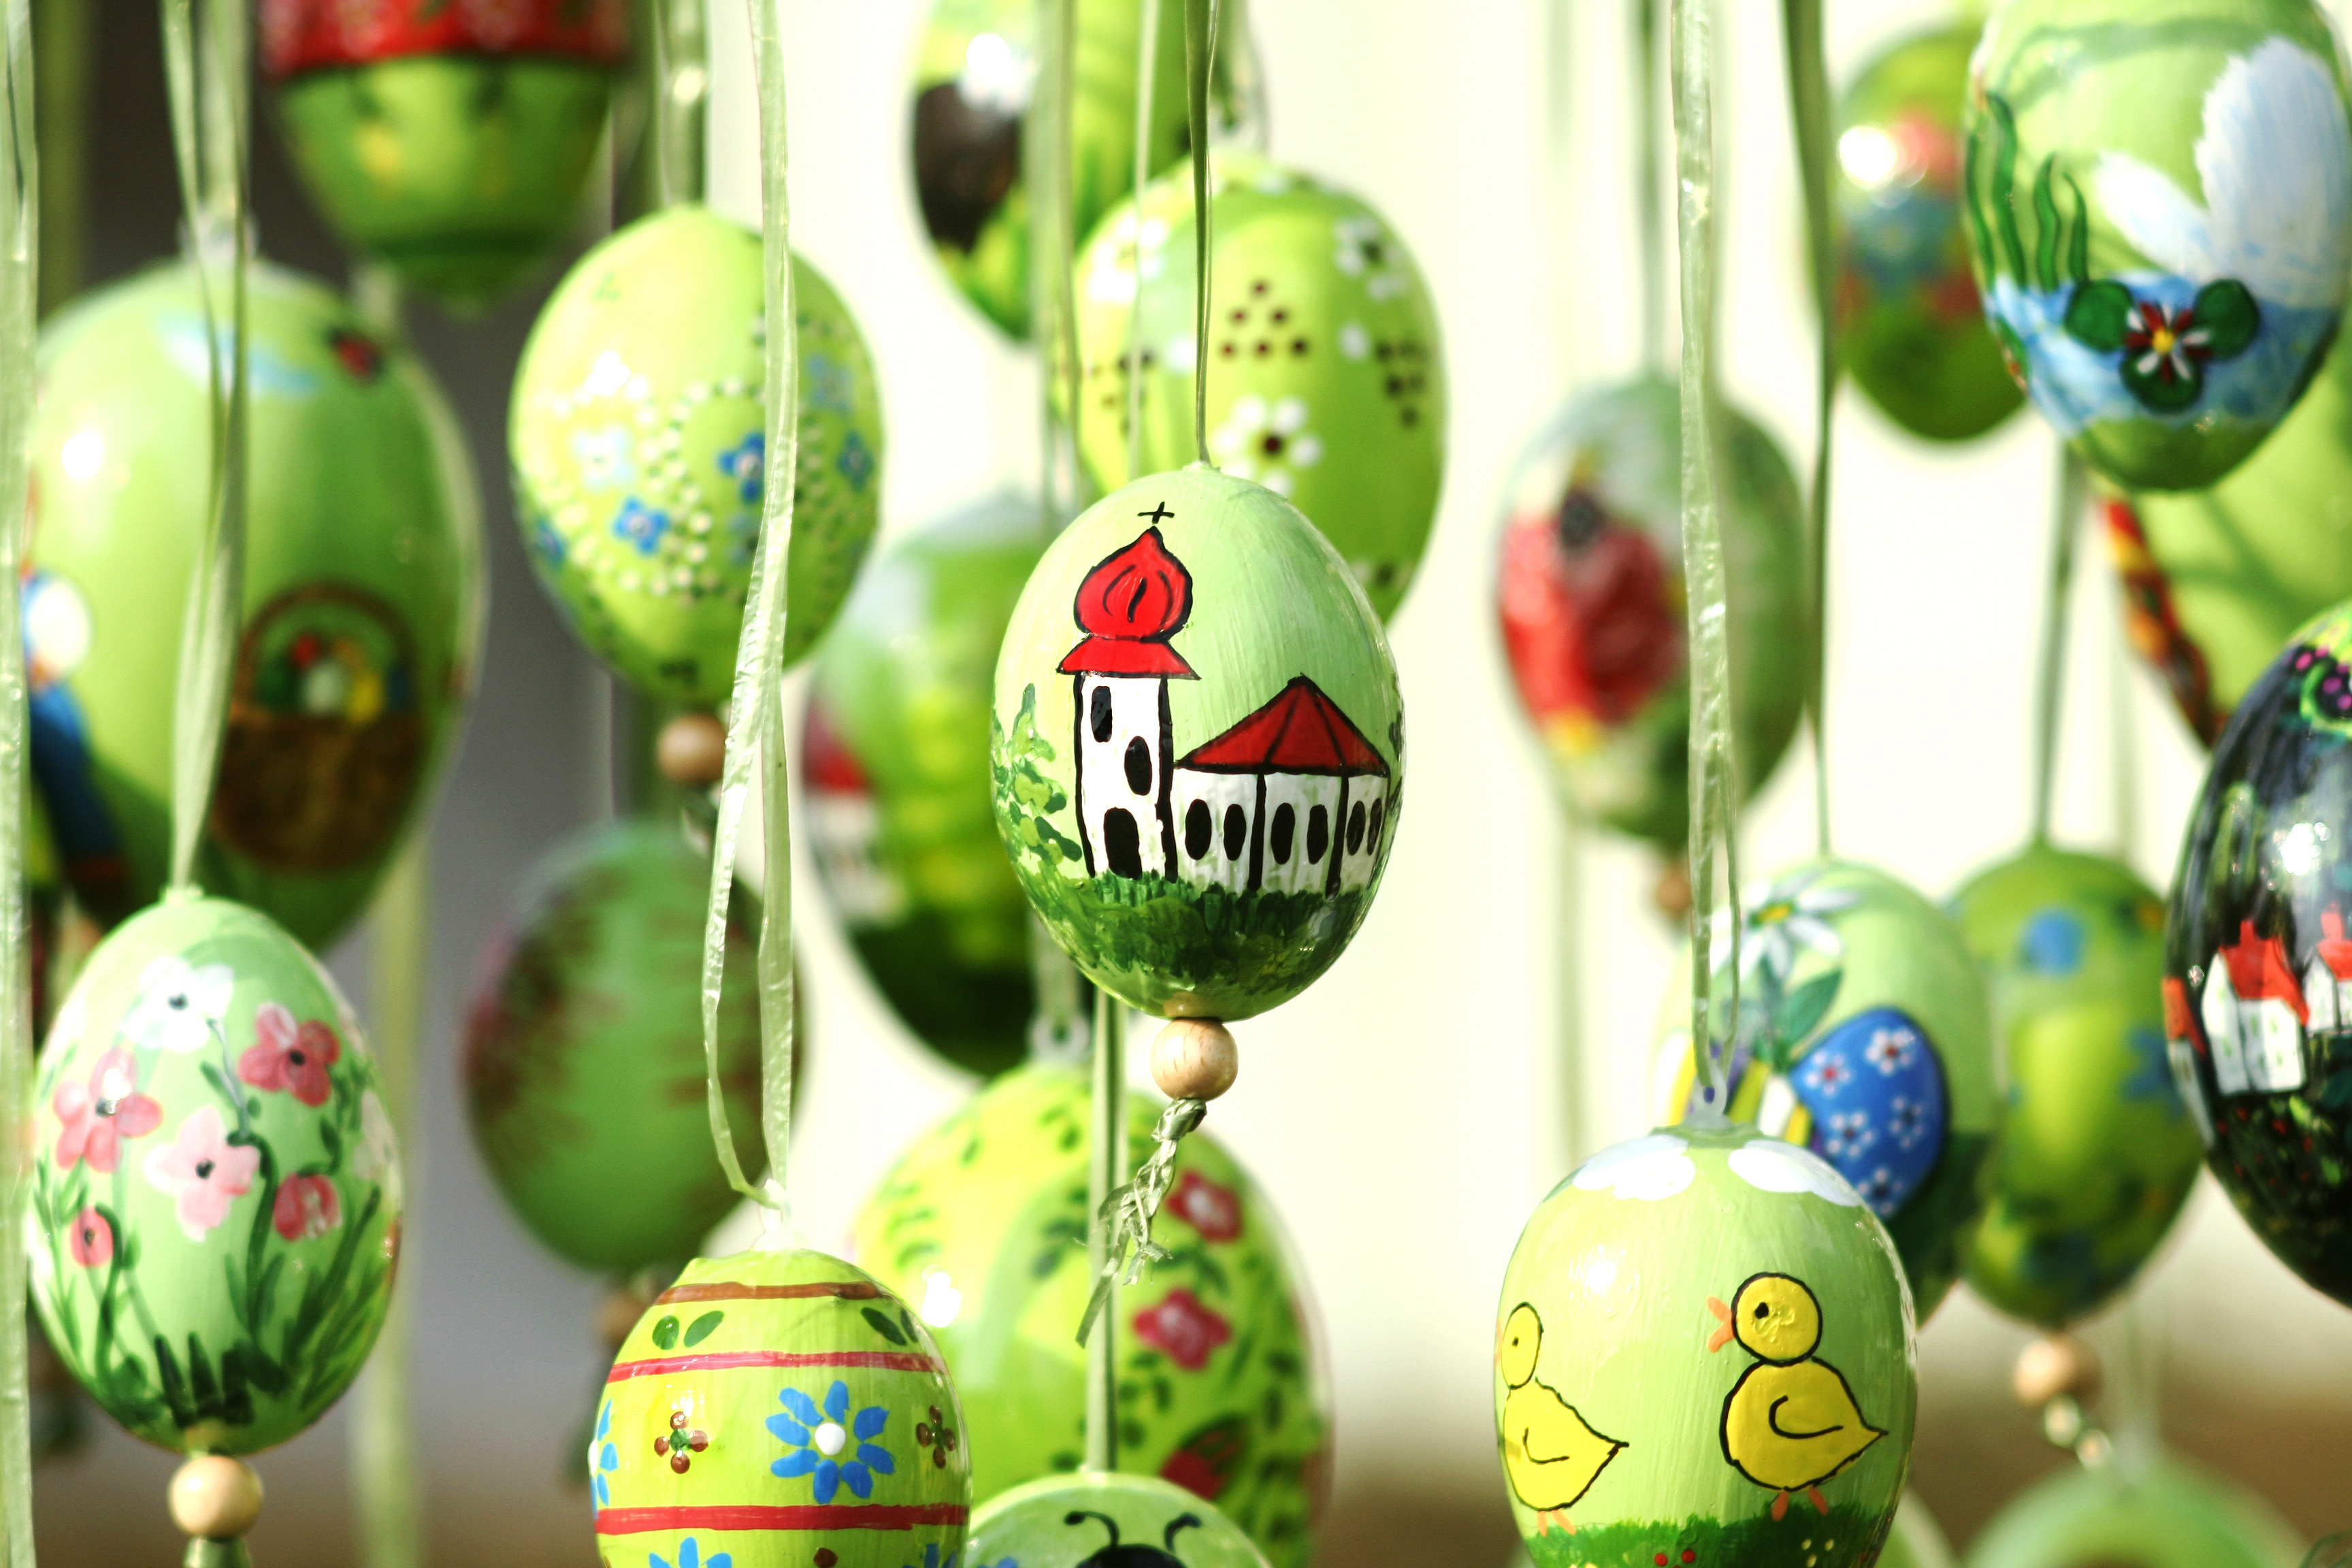 https www.pfarrbriefservice.de sites default files atoms image easter eggs 2138937 by andreas160578 cc0 gemeinfrei pixabay pfarrbriefservice